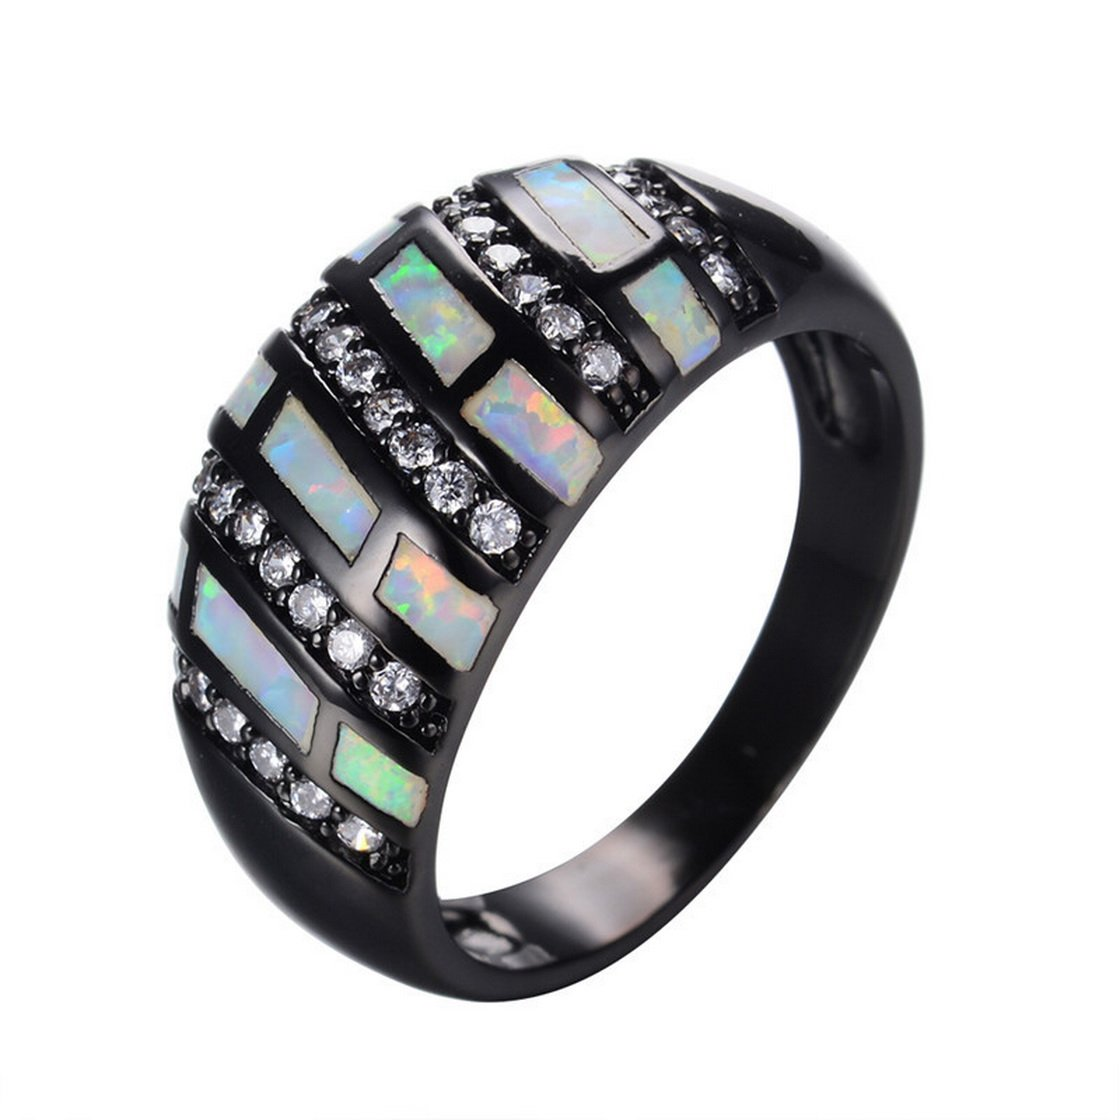 WOWJEW Elegant White Fire Opal Jewelry Clear Zircon Ring Vintage 10KT Black Gold Filled Wedding Crystal Rings